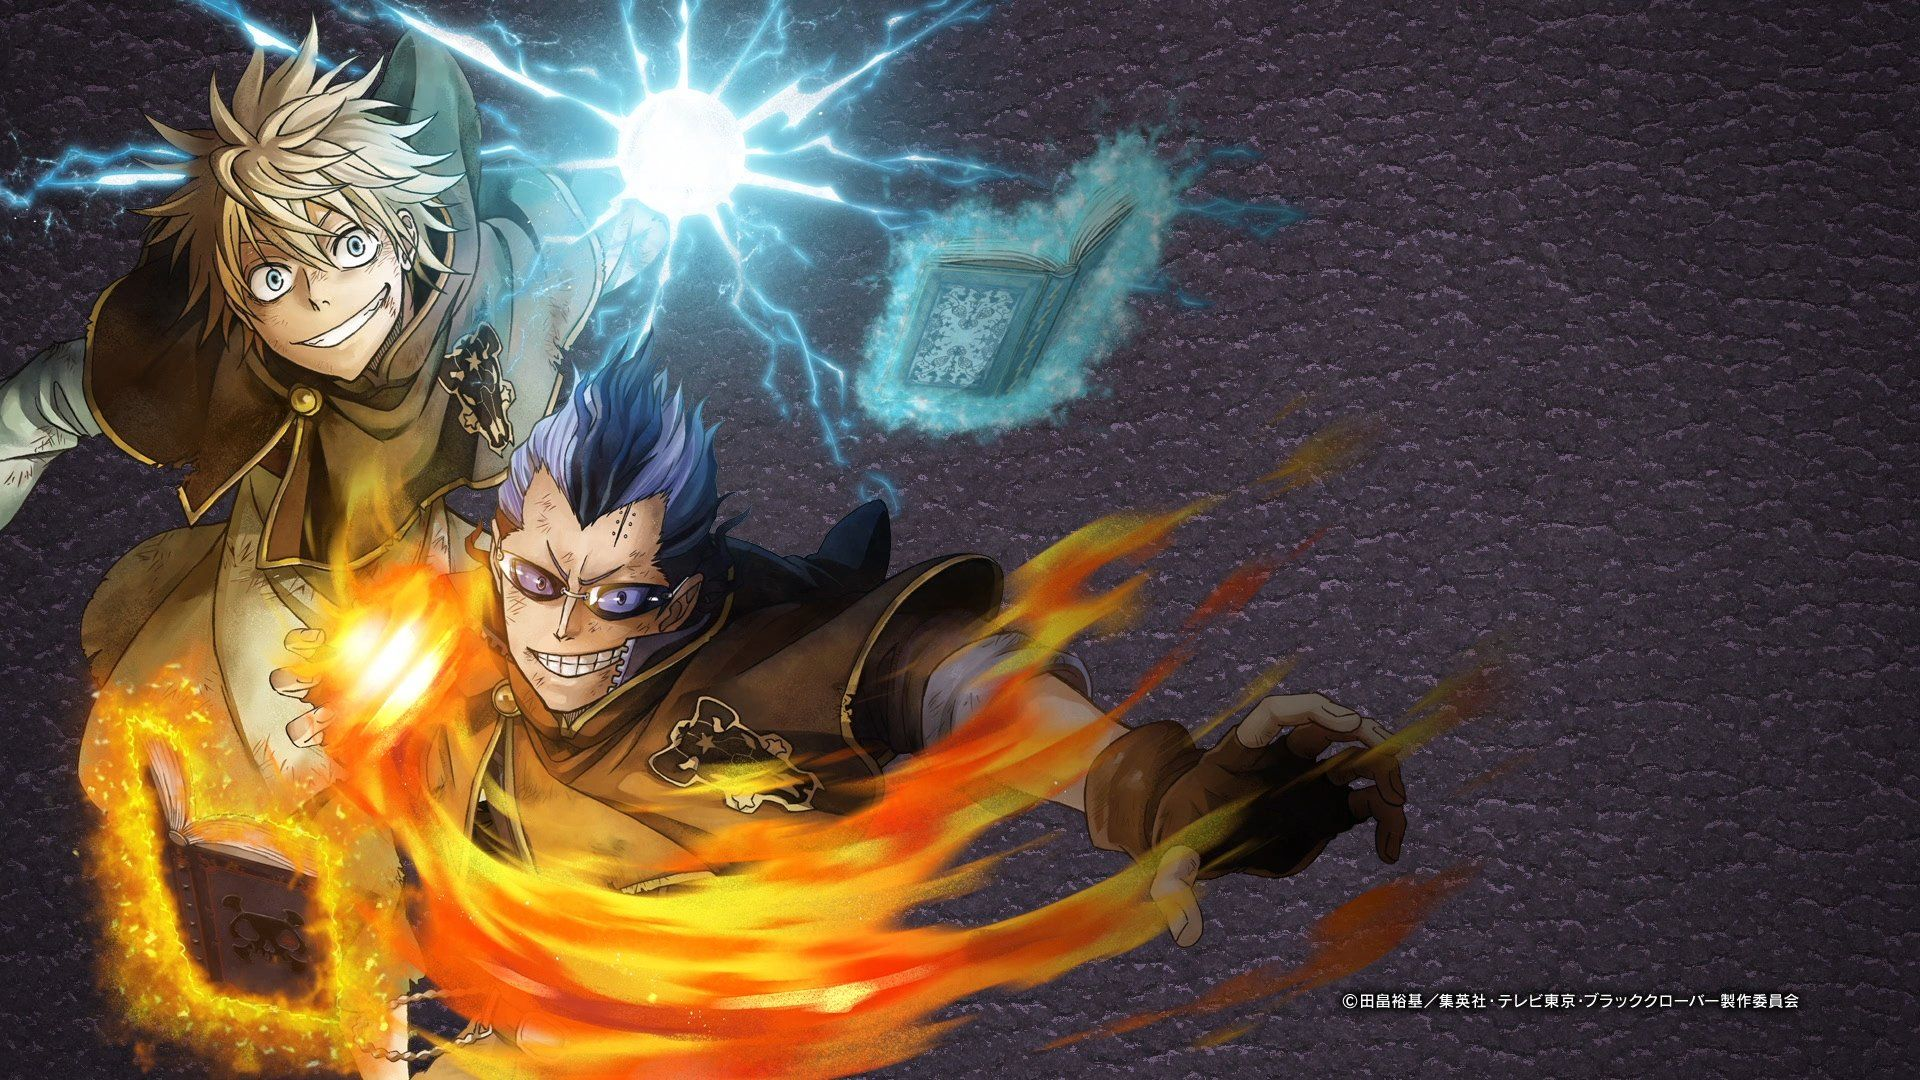 Install my black clover anime new tab to enjoy varied hd black clover anime wallpapers in your start page. Luck Voltia Wallpapers - Top Free Luck Voltia Backgrounds ...